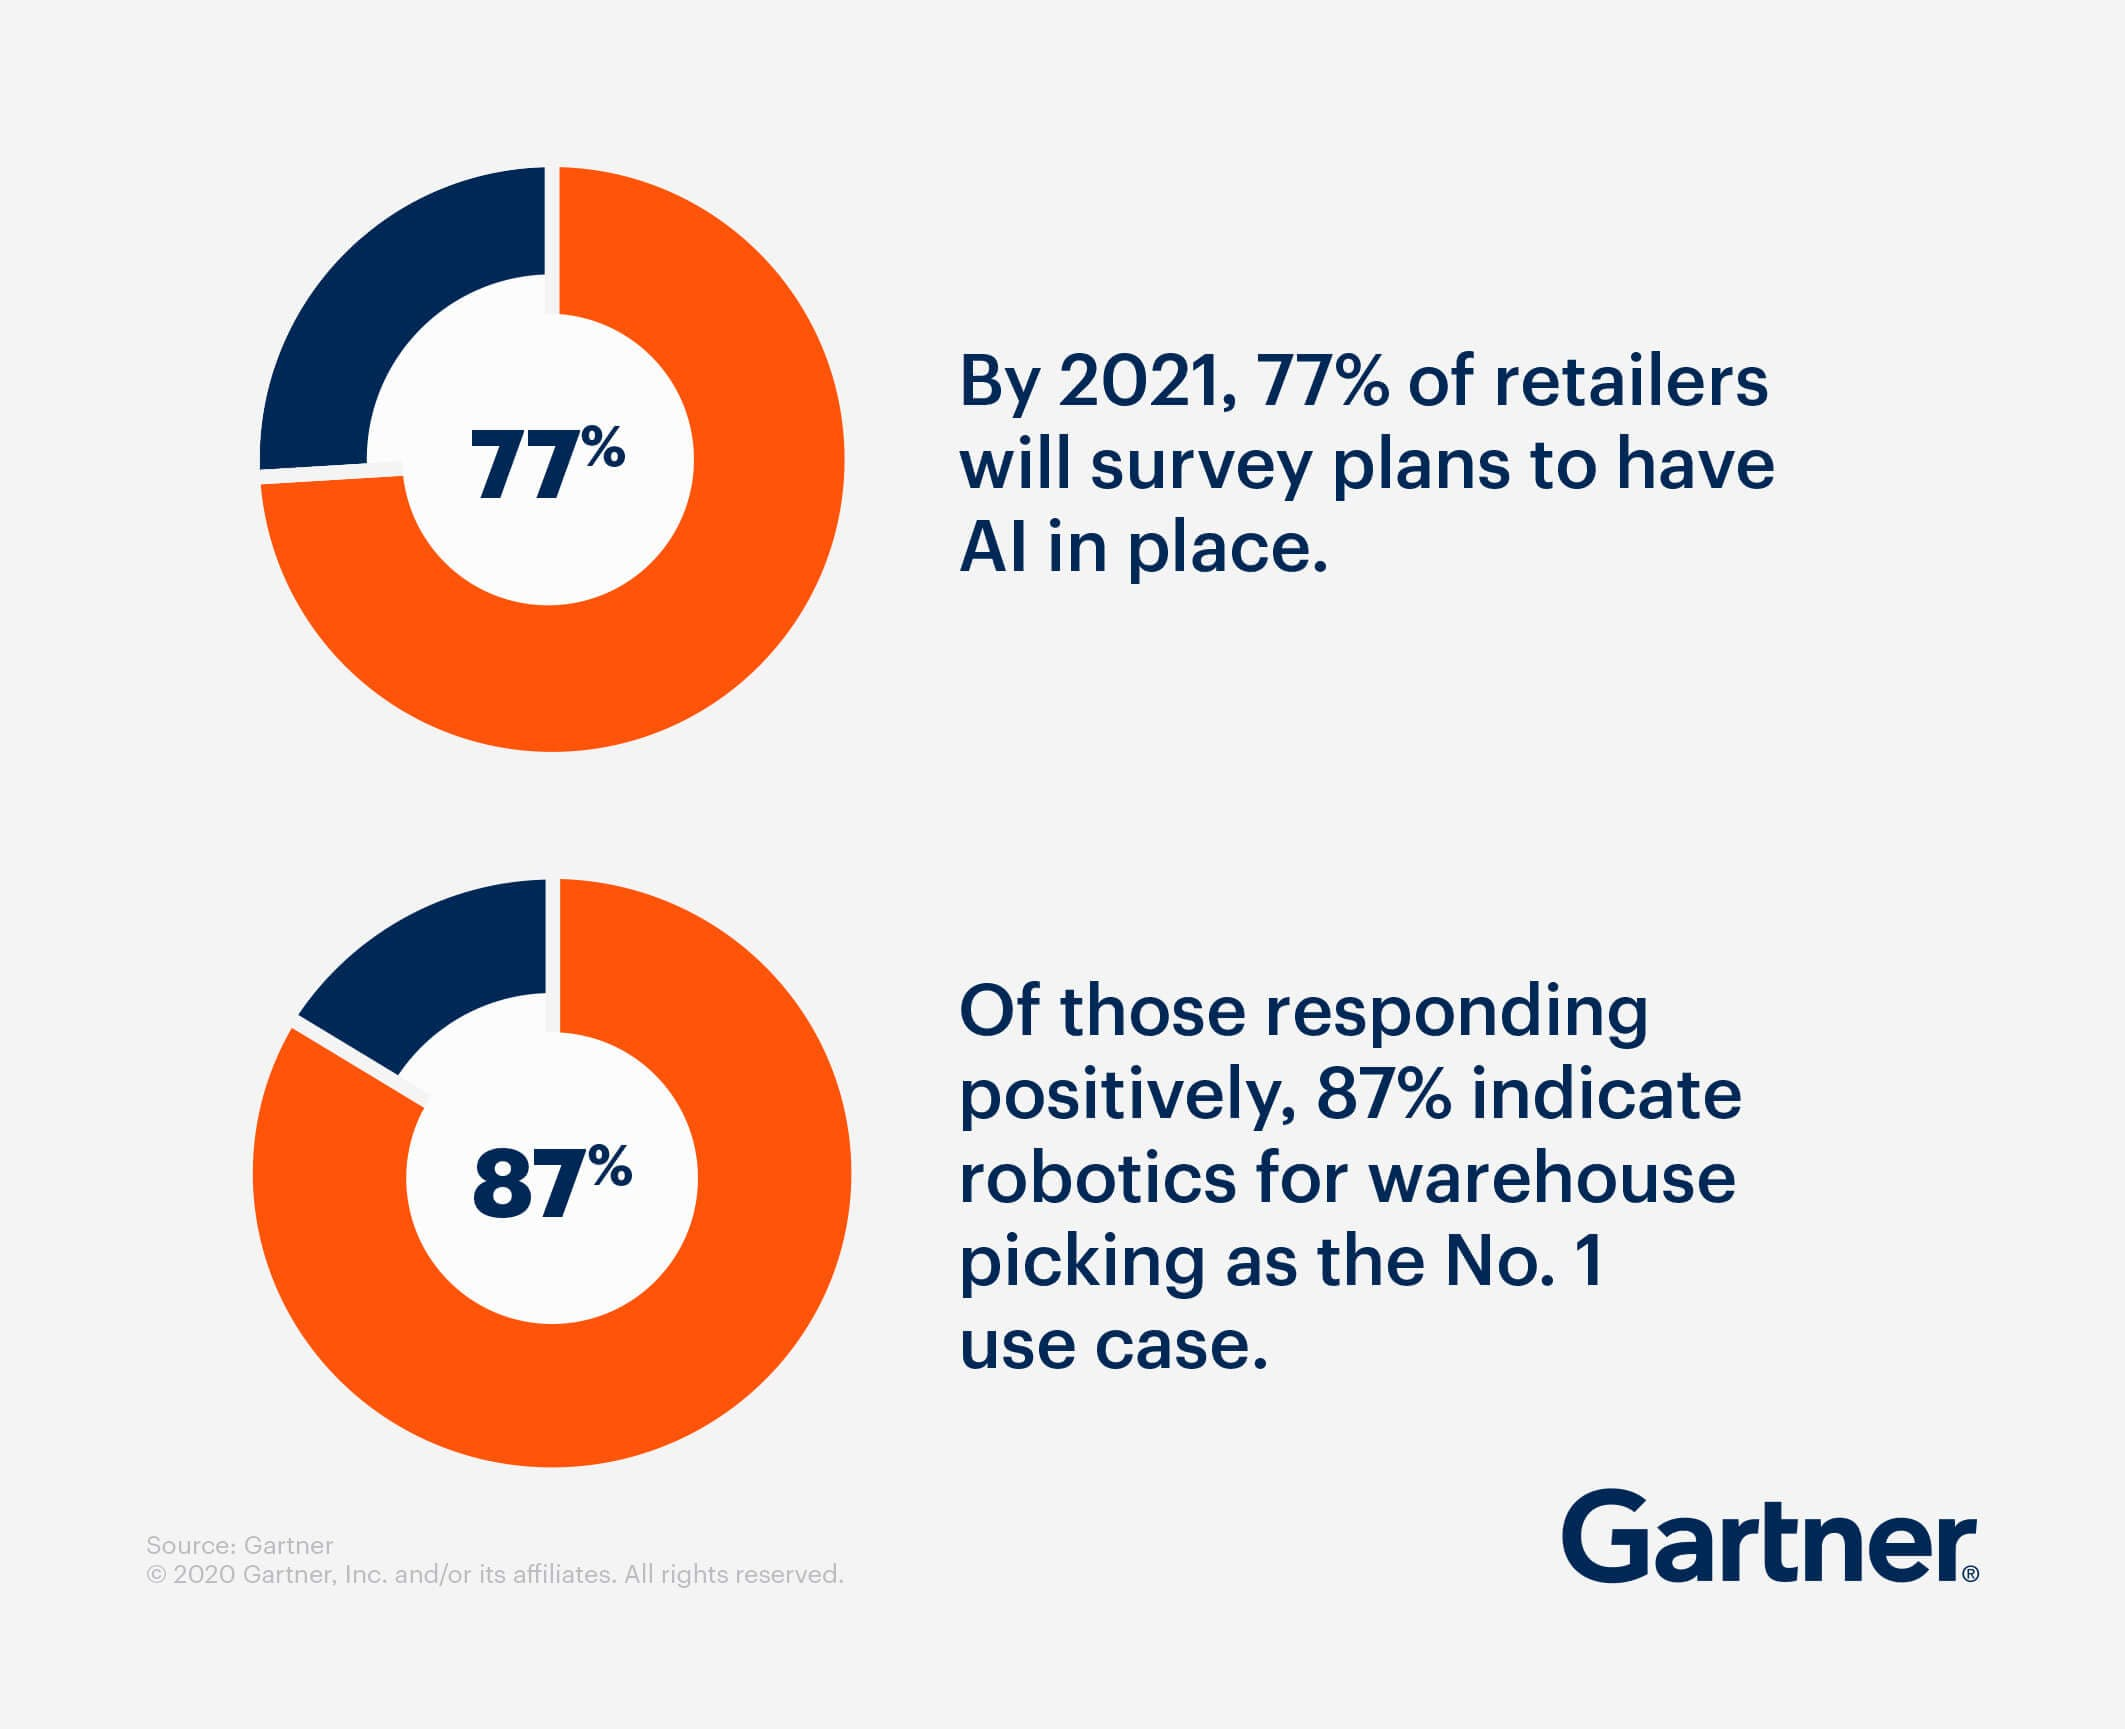 Gartner Research: Emerging trends in retail and how artificial intelligence is accelerating this